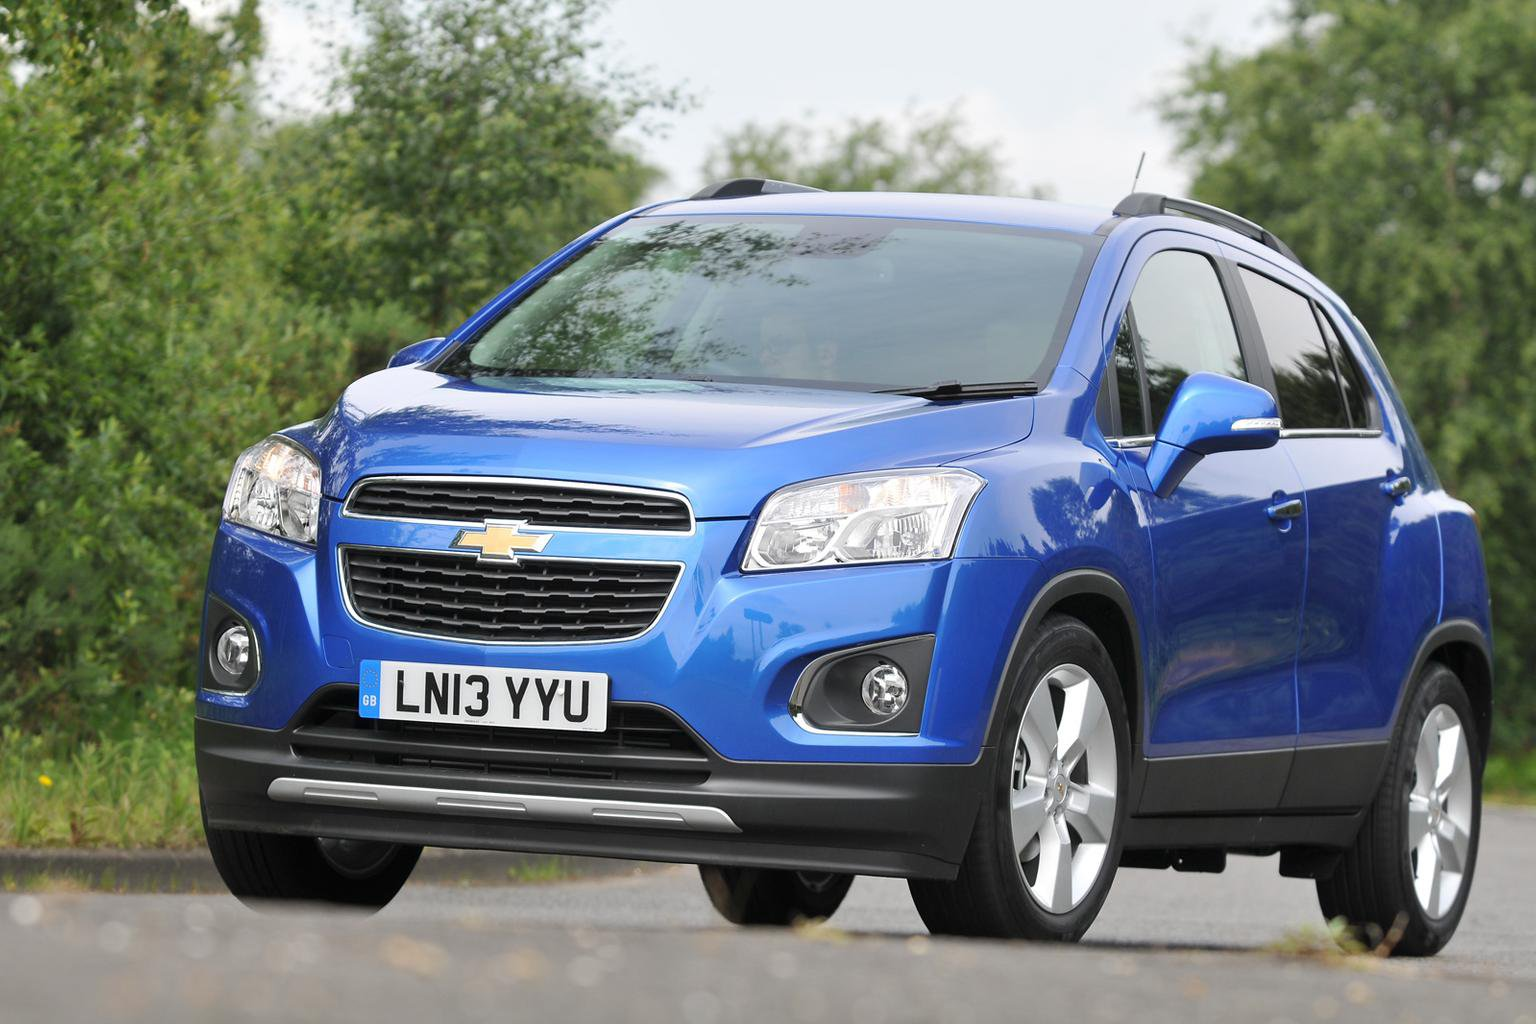 GM to axe Chevrolet in Europe by end of 2015